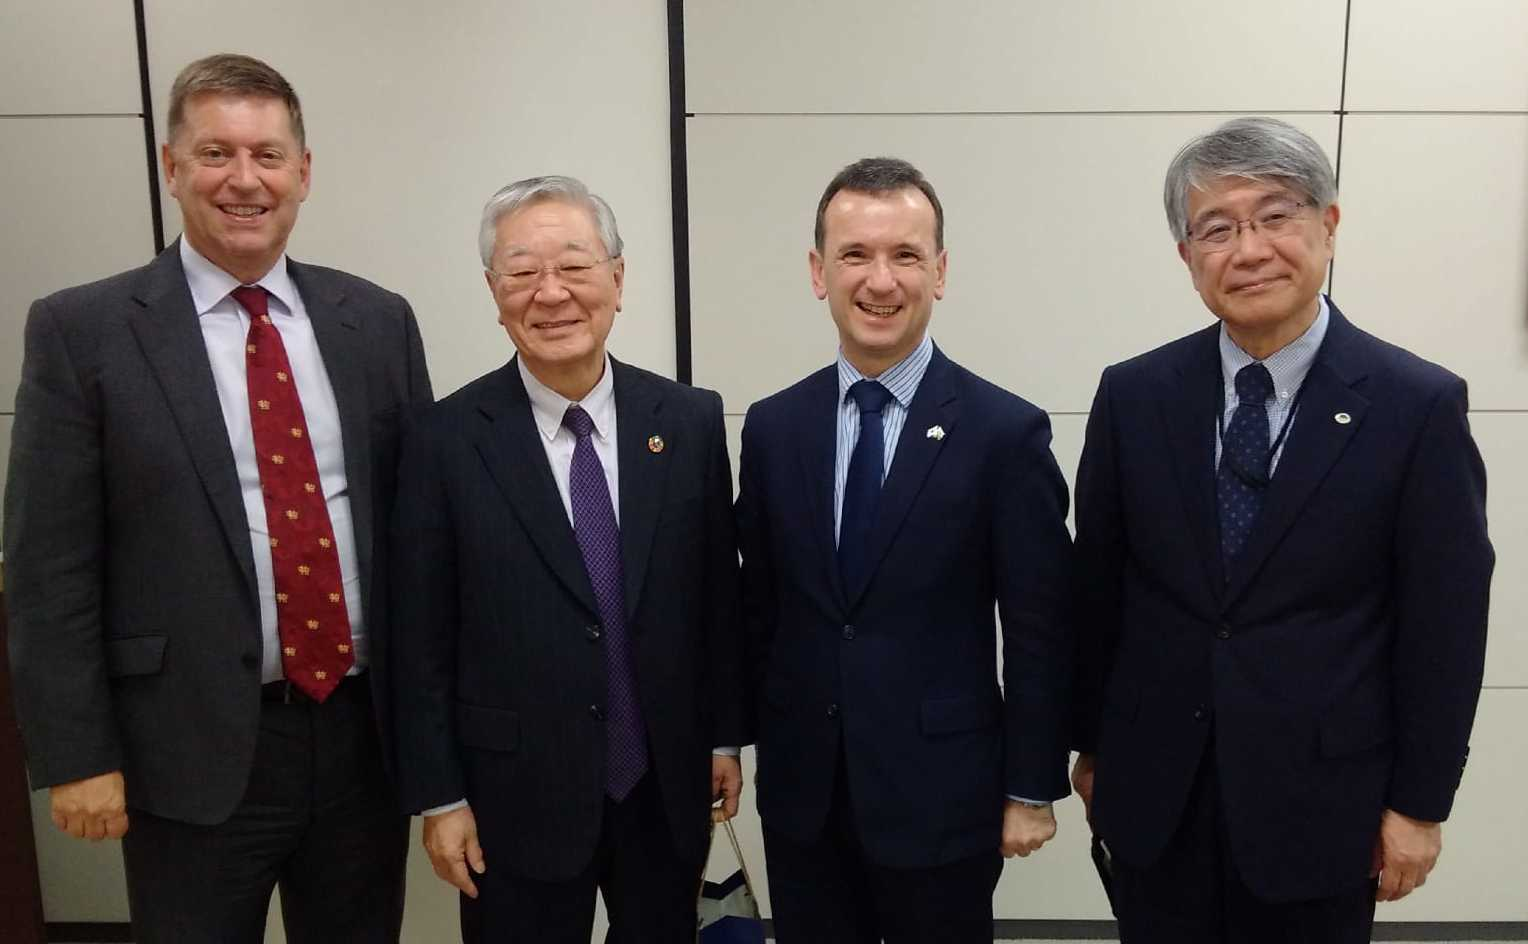 Welsh Secretary Alun Cairns (third from left) during his visit to Japan. PICTURE: Welsh Government.